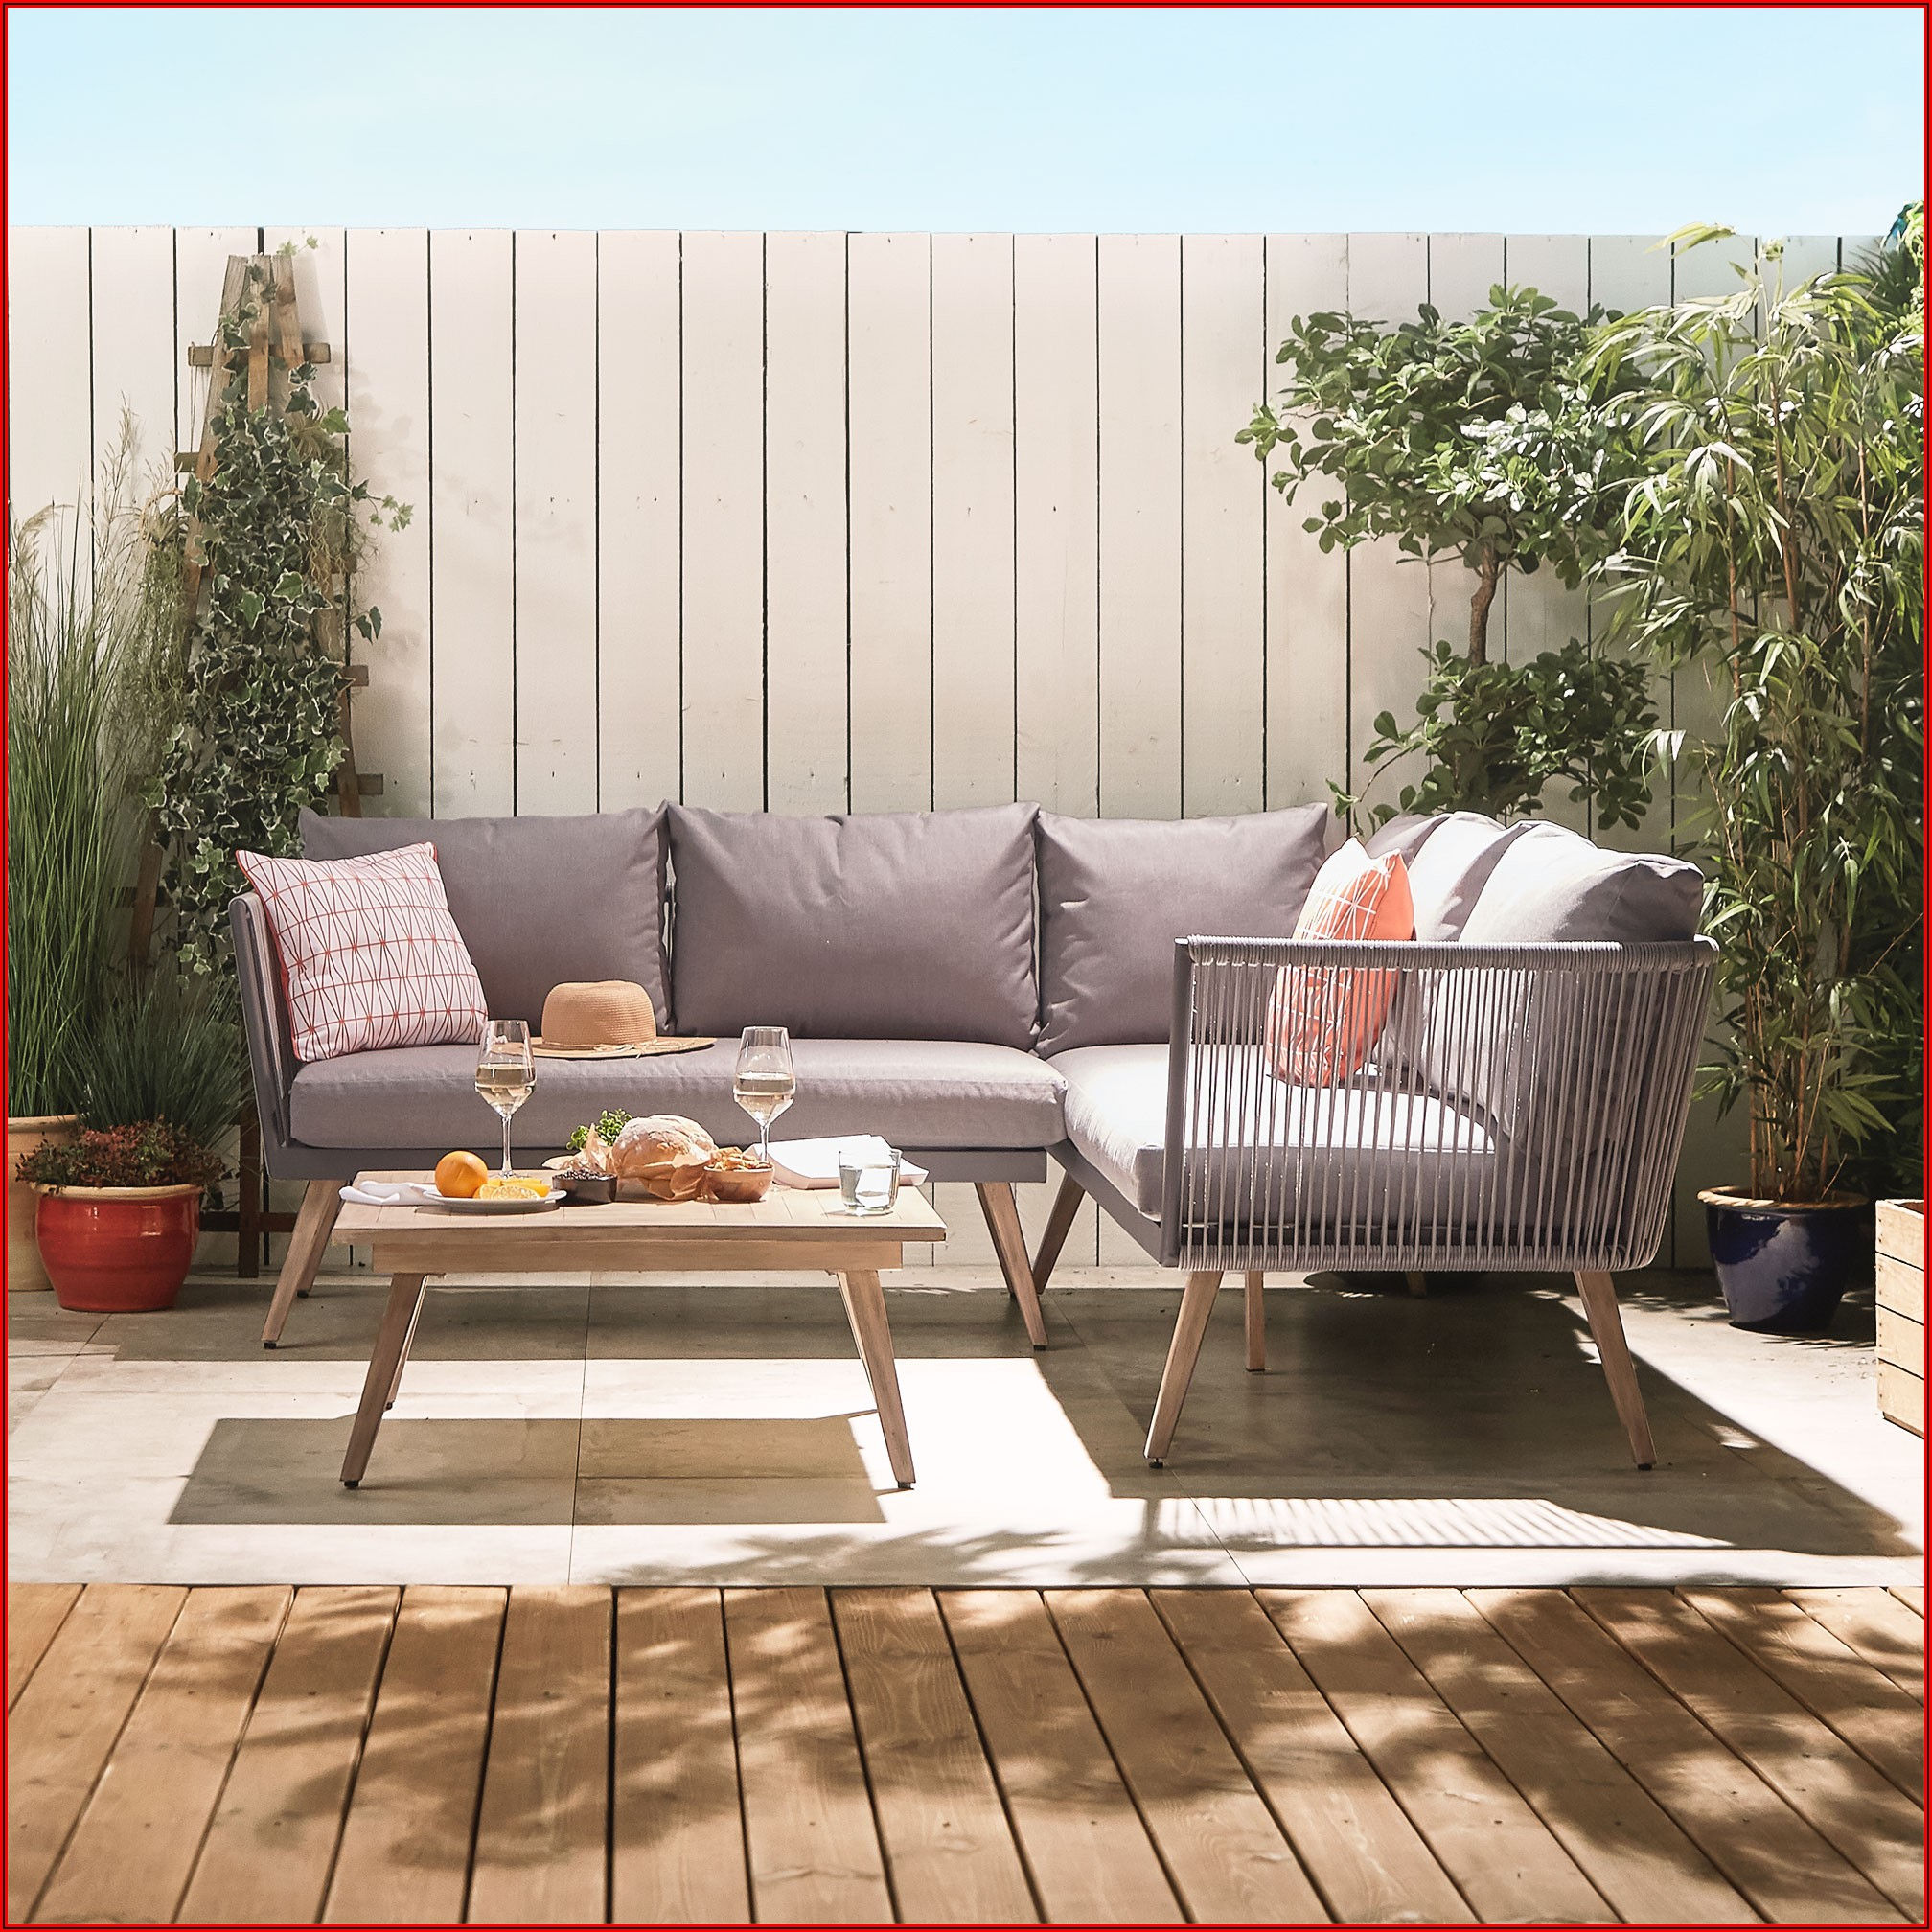 The Patio Outdoor Furniture